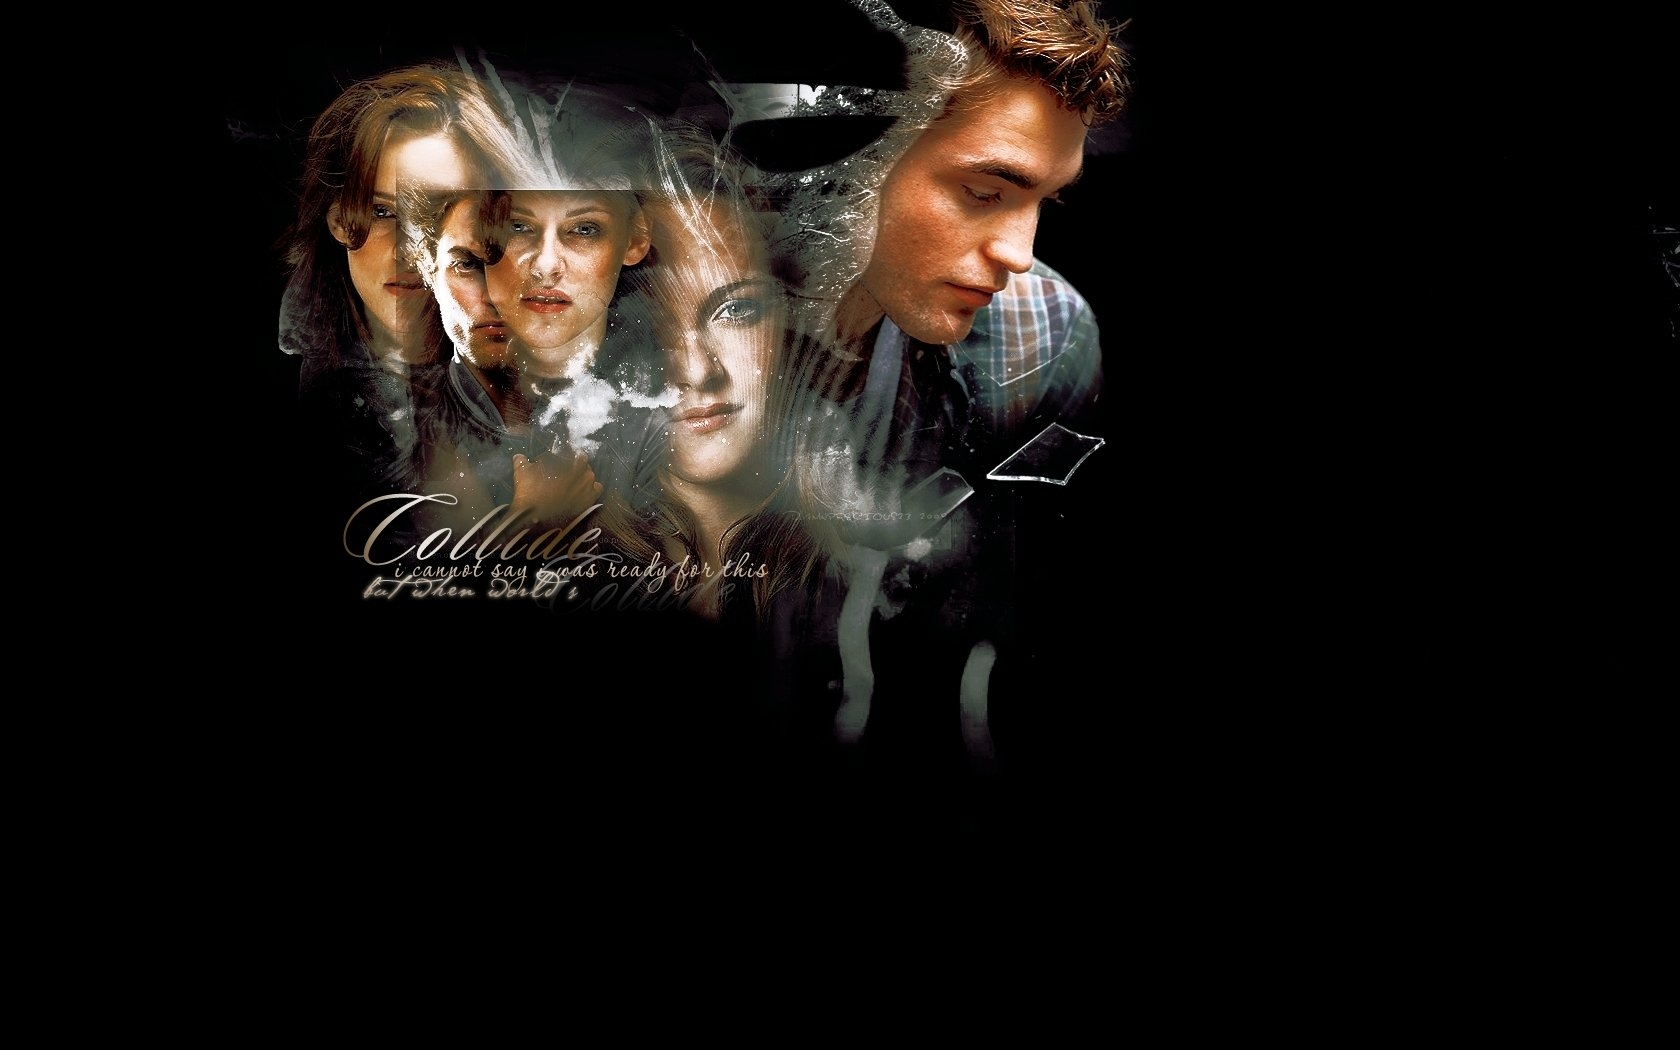 Bella-Edward-3-twilight-series-7470620-1680-1050 - сумреки обои